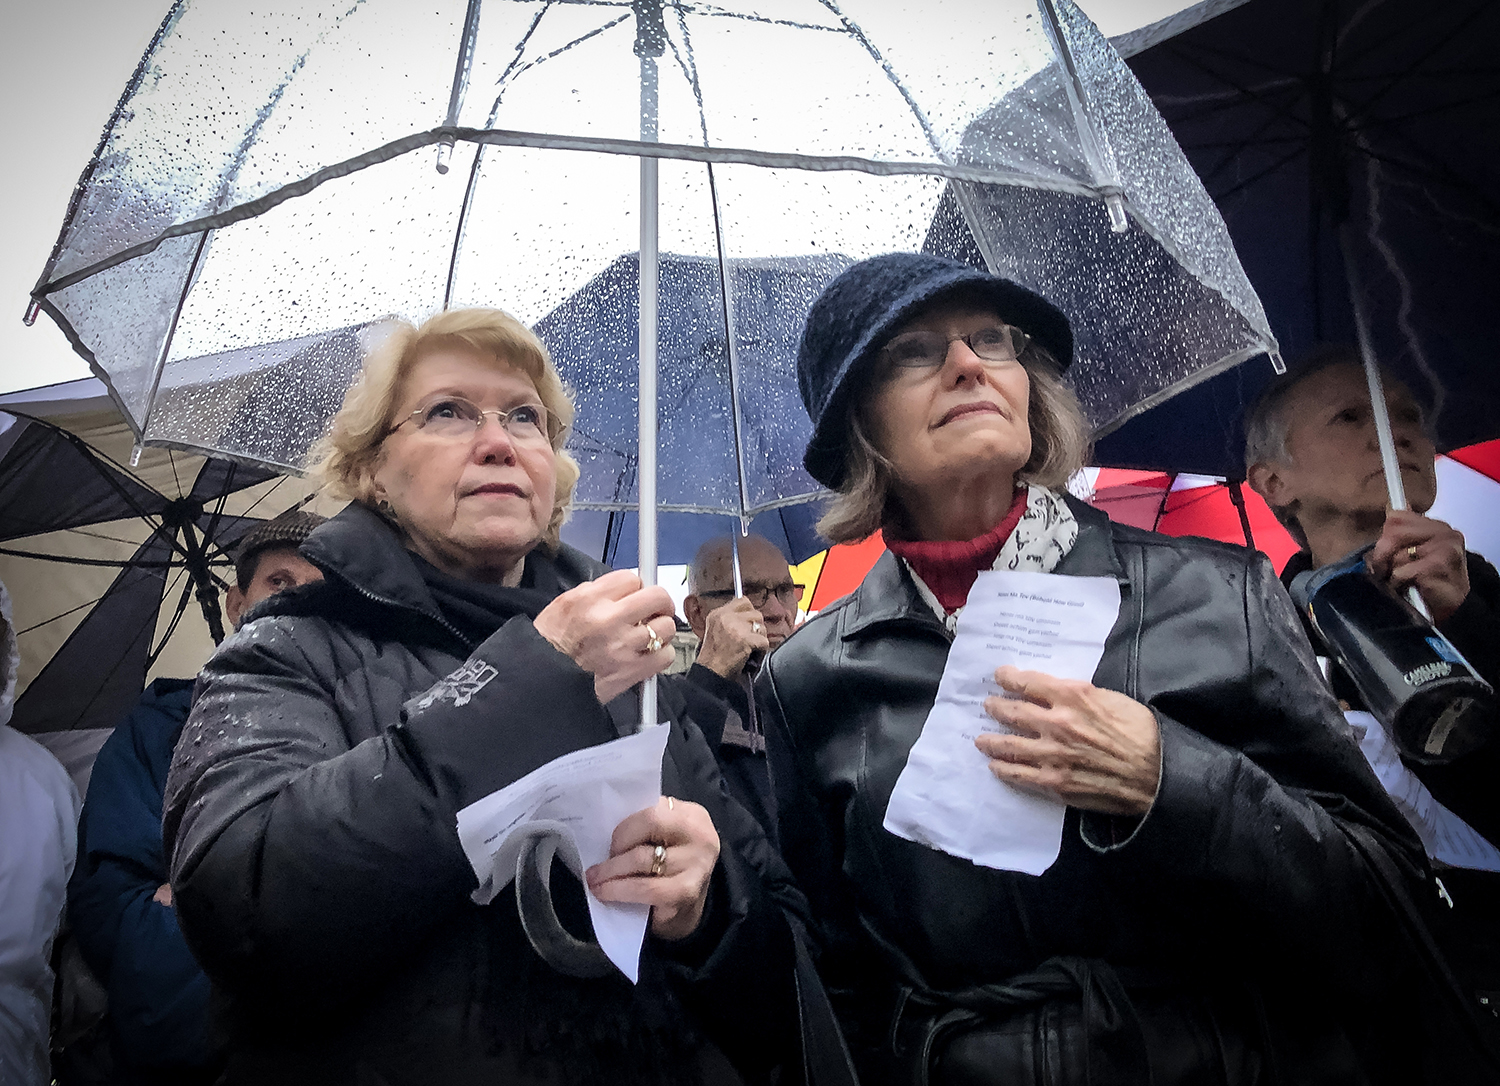 """Sonia Gerson, left, and Maggie Moscato, right, share an umbrella as they gather to listen to leaders from various faiths around Springfield deliver messages of support to the Jewish community as they mourn the loss of life at the Tree of Life Synagogue in Pittsburgh, Pa., during a vigil organized by the Jewish Federation of Springfield and the Jewish Community Relations Council on the steps of the Illinois State Capitol, Thursday, Nov. 1, 2018, in Springfield, Ill. """"My mother was a holocaust survivor and she escaped Germany in 1938,"""" said Gerson. """"The hatred has to stop, we've got to stop.""""  [Justin L. Fowler/The State Journal-Register]"""